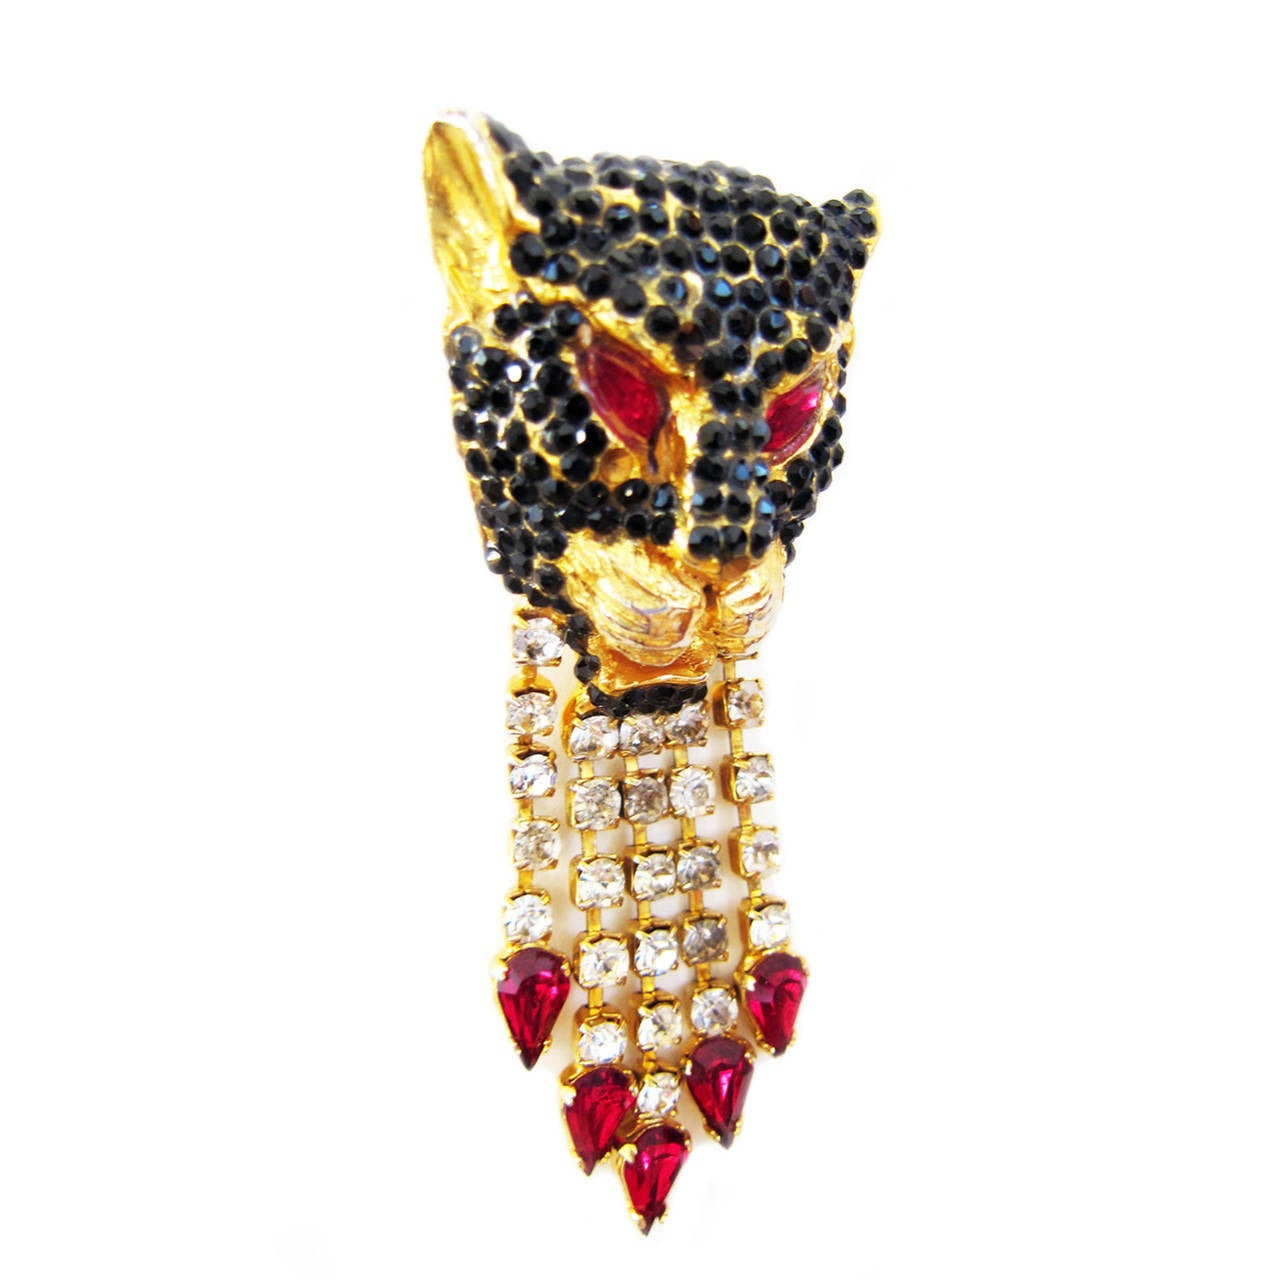 Gianni Versace Black Panther Pendent Head Clip 1990's For Sale 1